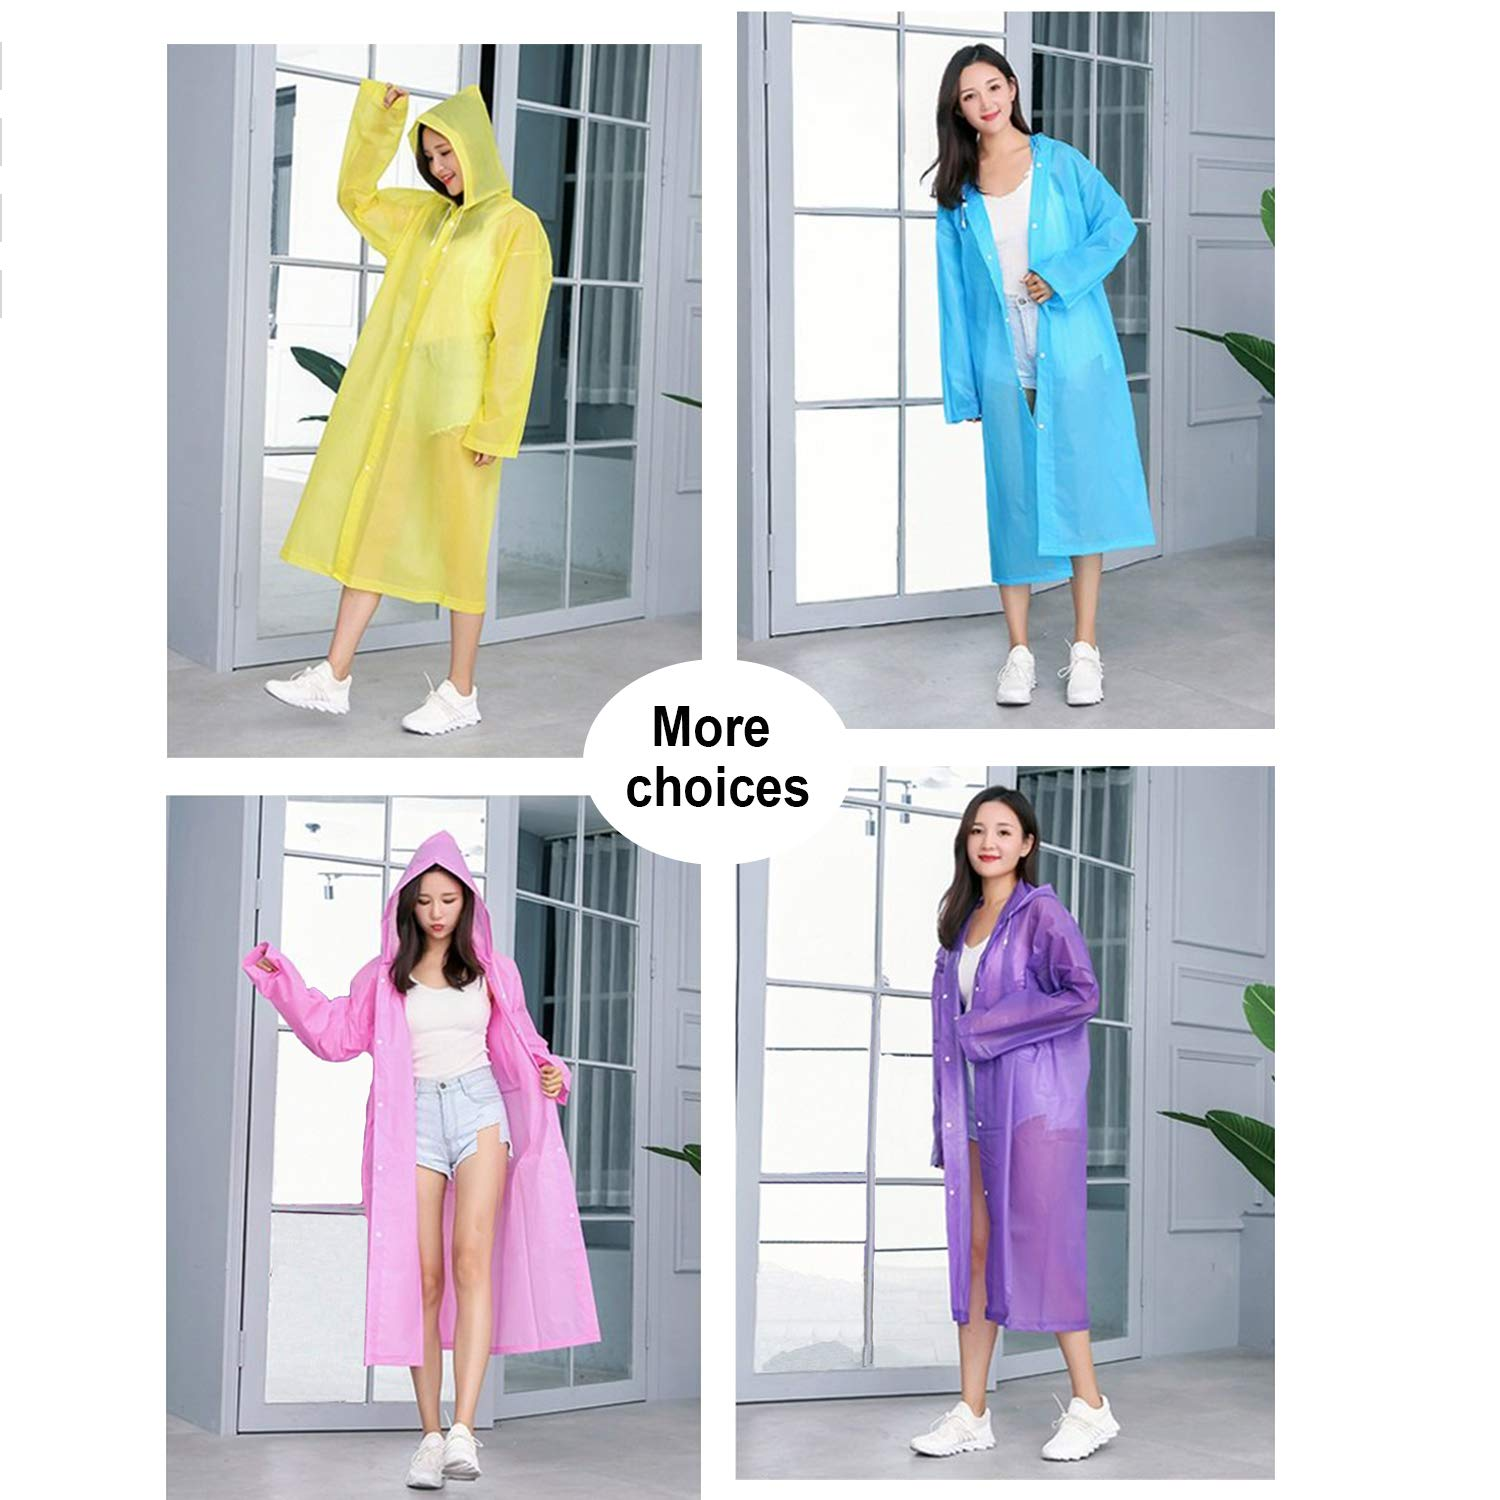 Rain Jackets Rain Ponchos for Women Men Adults Teens One Size Fit All with Hood Home Blue Car Perfect to Keep in Emergency Kit Office Backpack in Case A Rainy Day Pocket